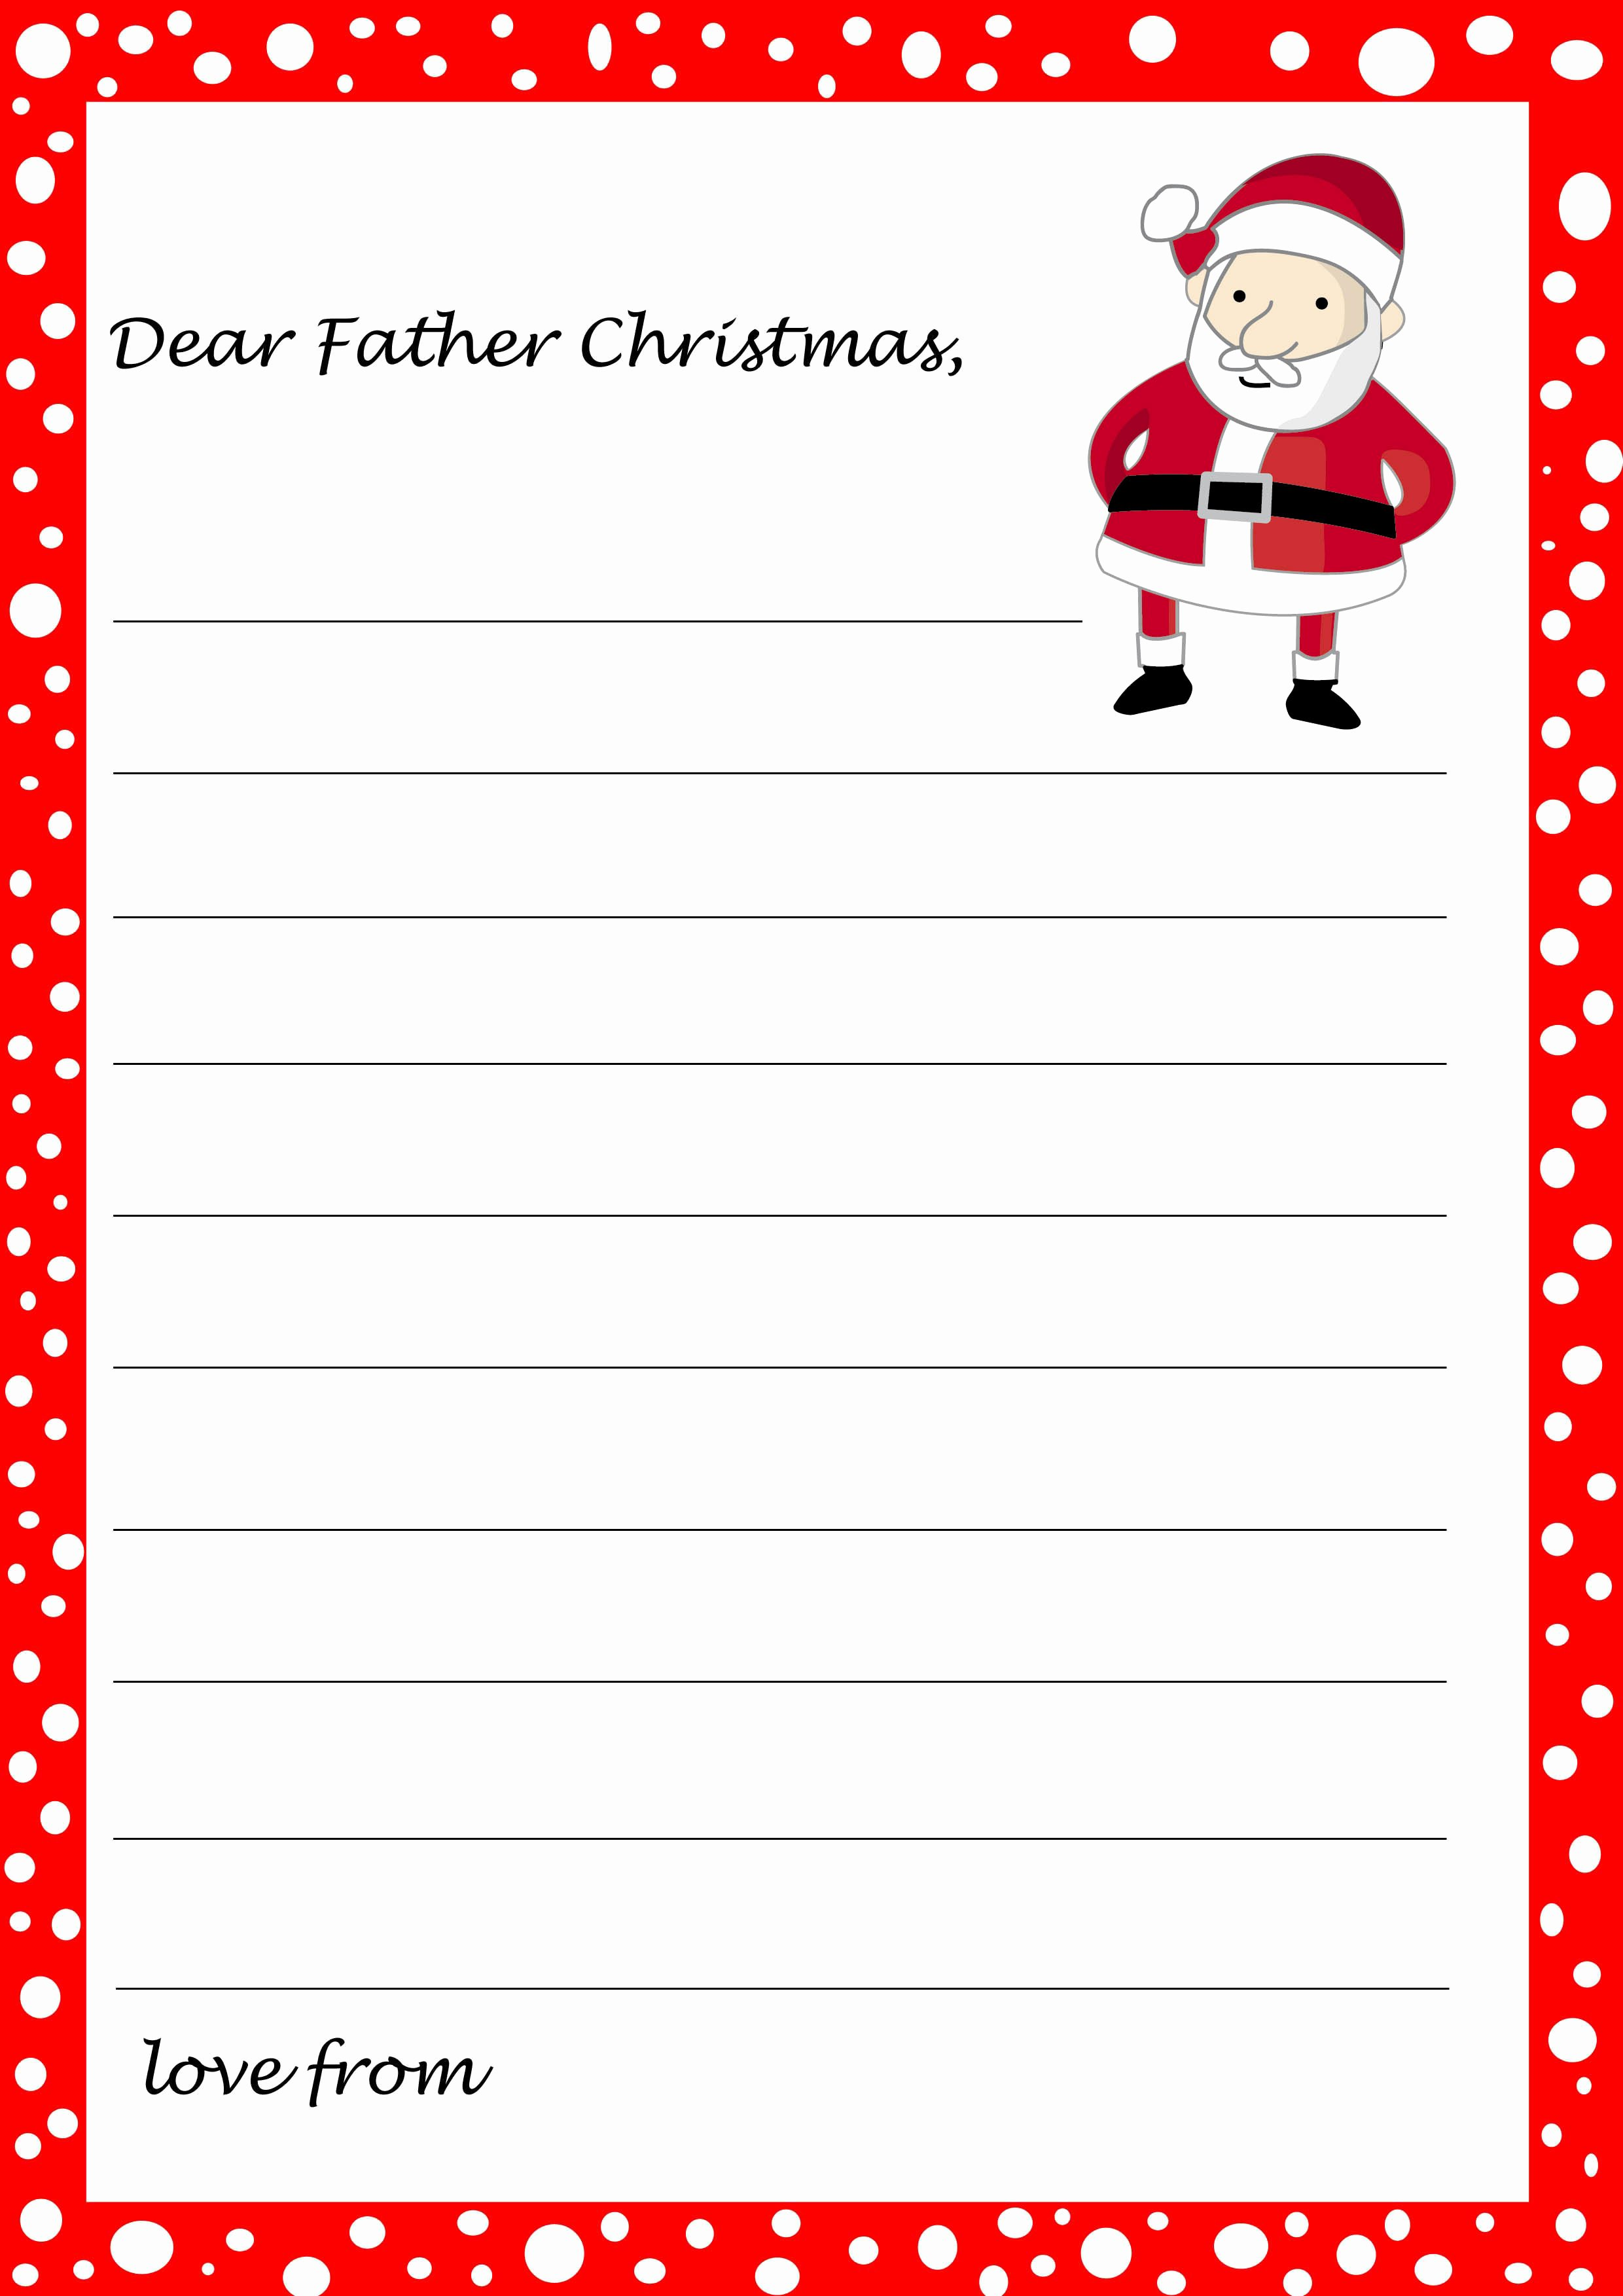 Letter From Santa Template Word Inspirational Free Printable Letter From Santa Template Word Download